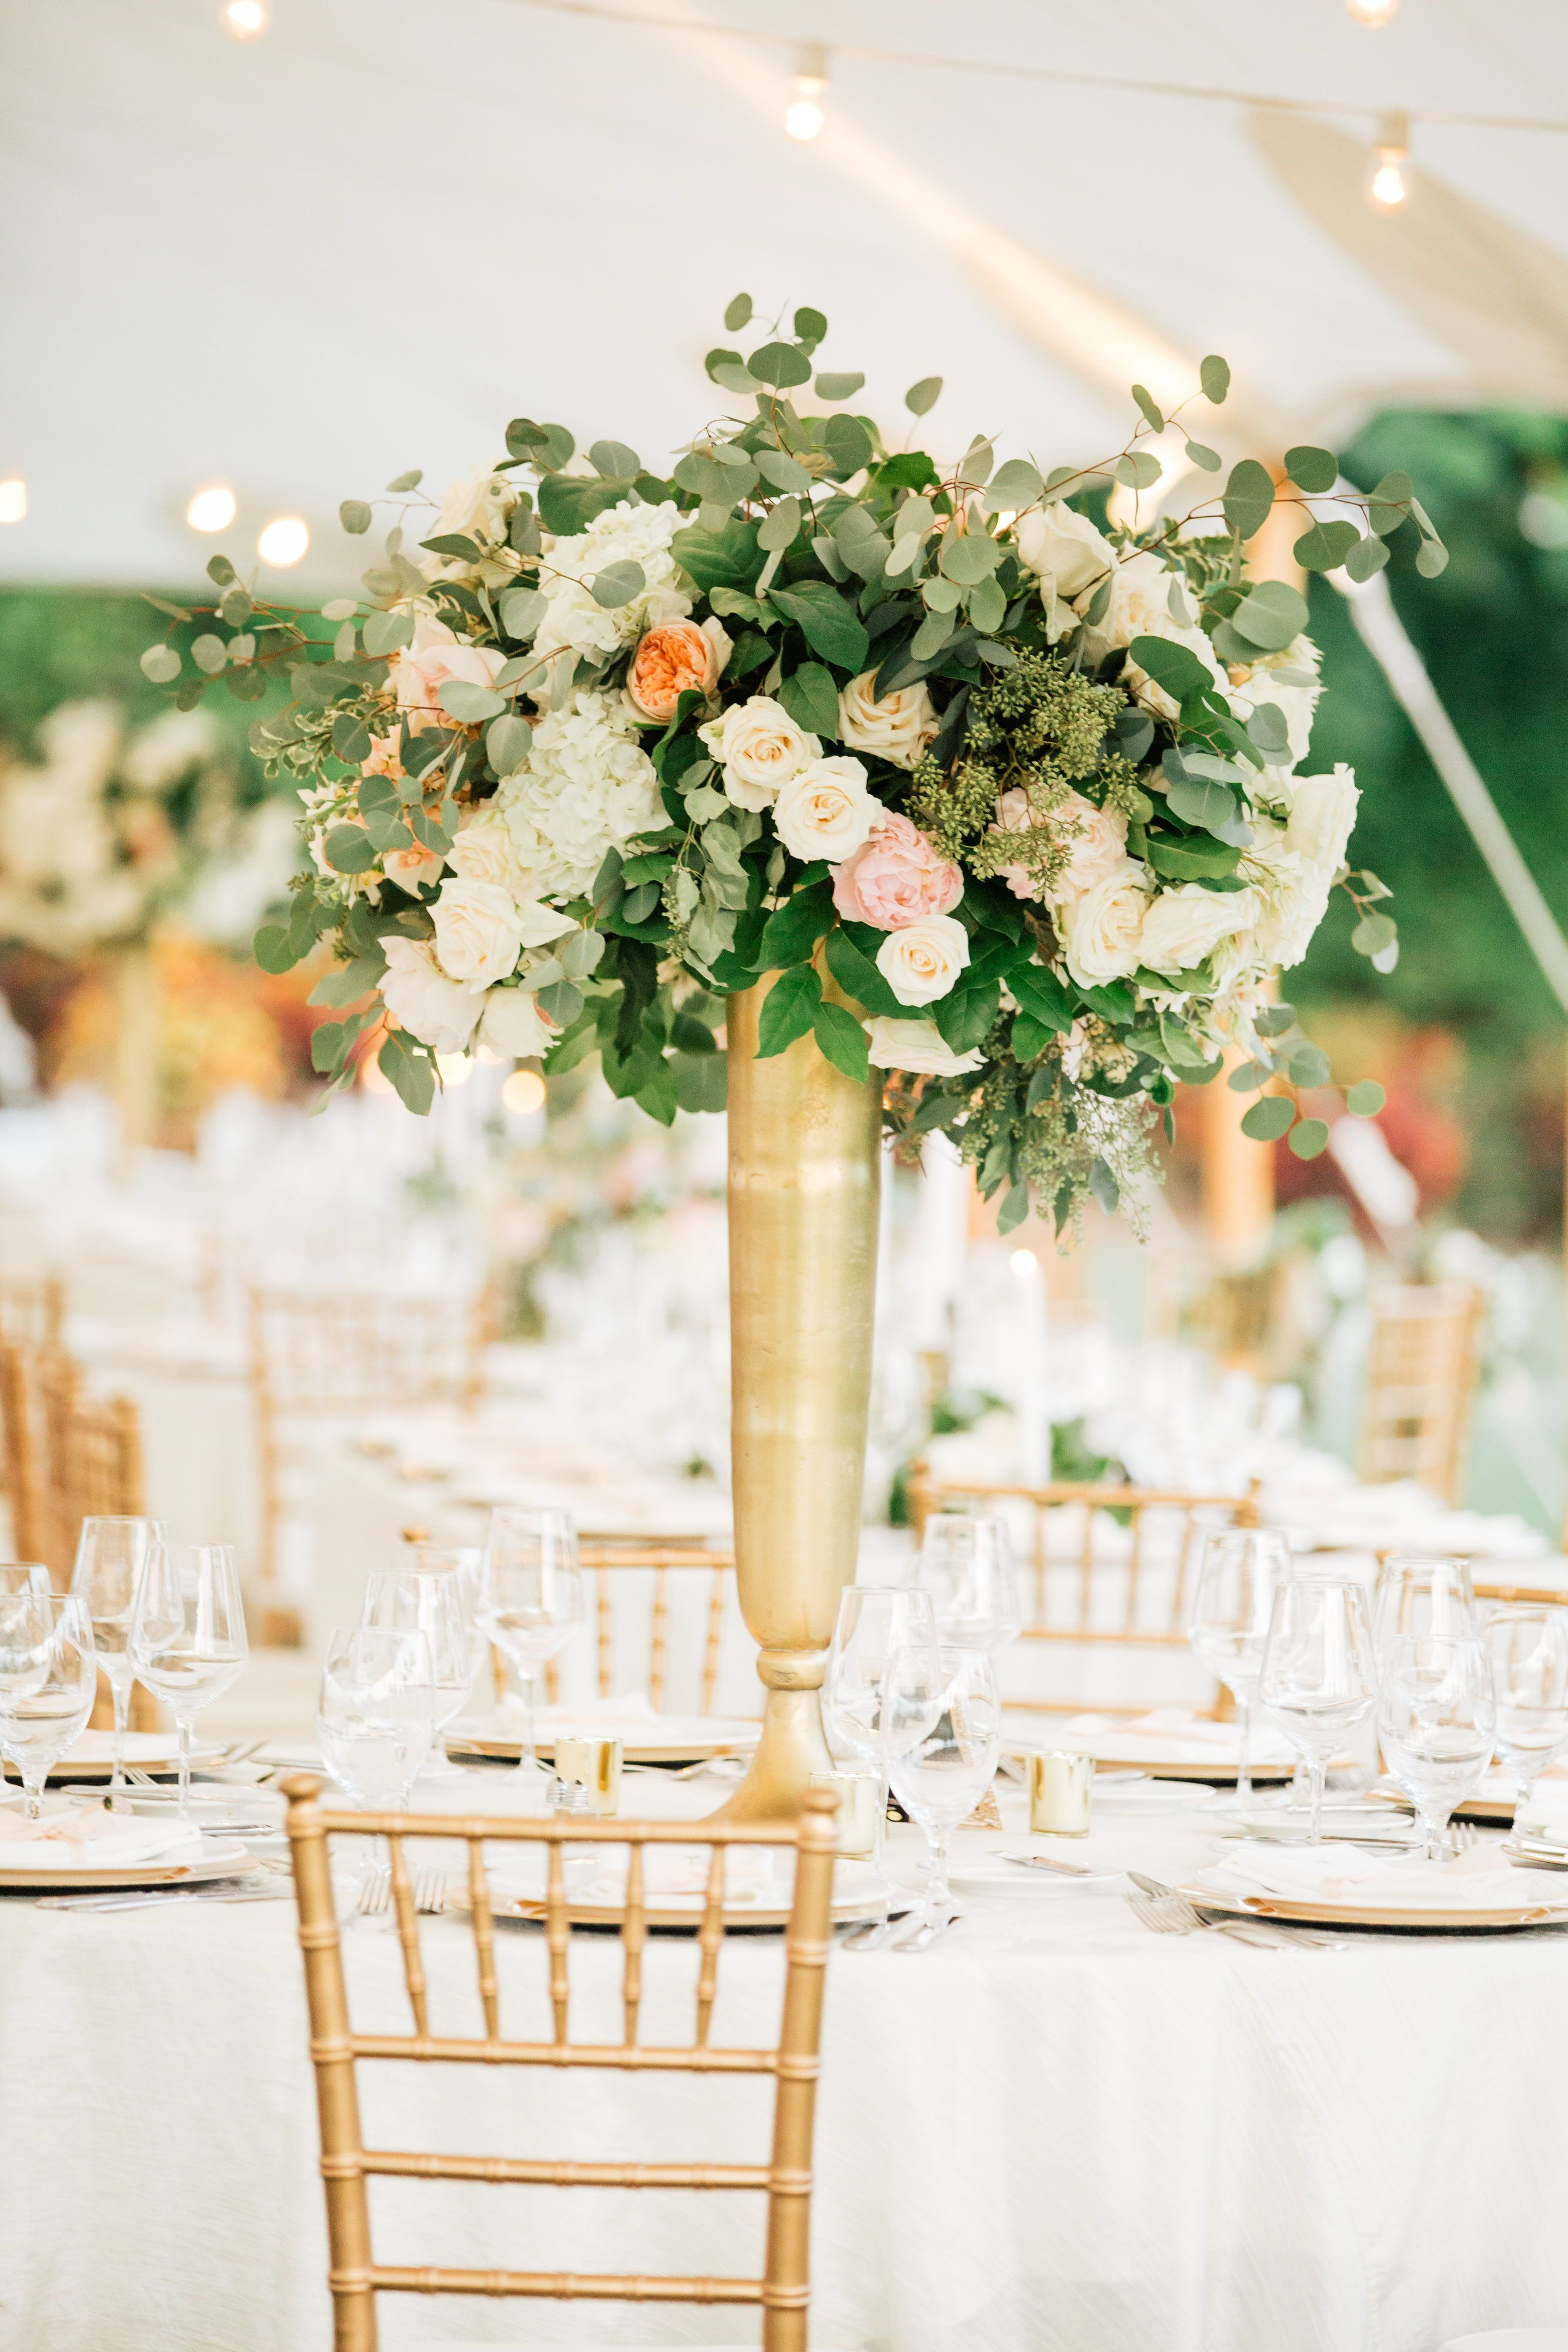 Wedding reception decoration ideas with lights  Sailcloth tent Sperry tent Tented wedding Tall centerpiece